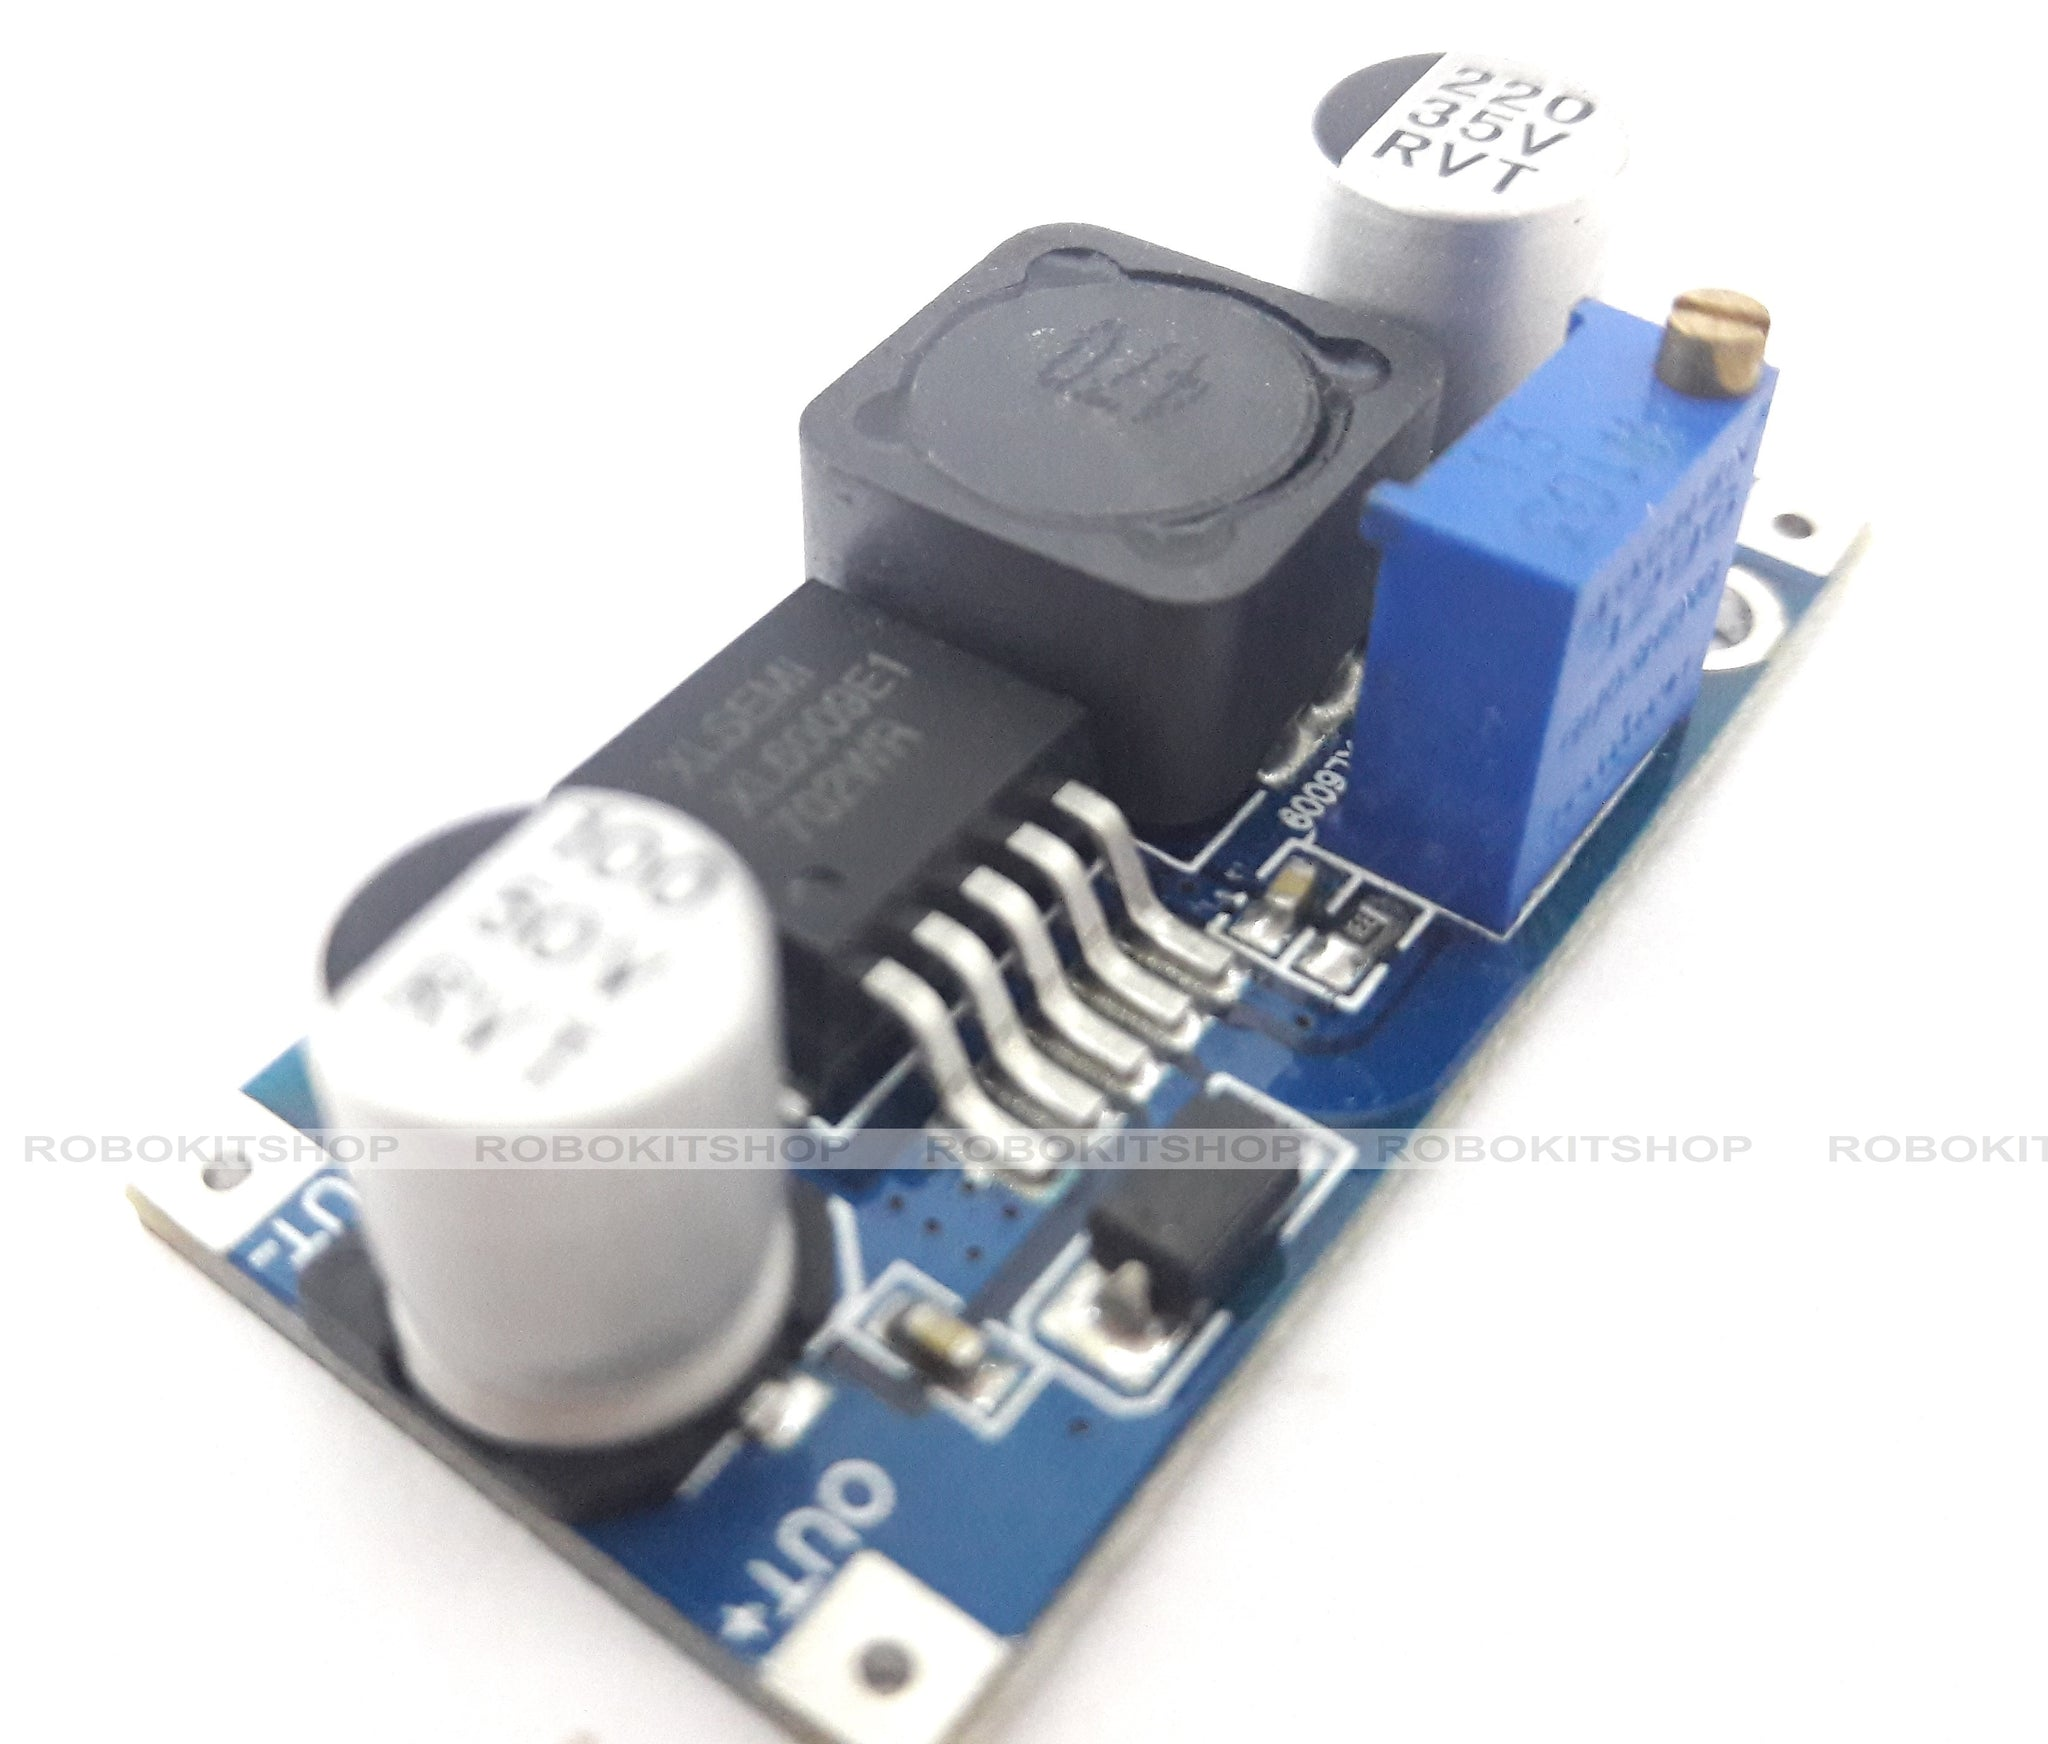 Xl6009 Dc Adjustable Step Up Boost Power Converter Module Better To 4a Than Lm2577